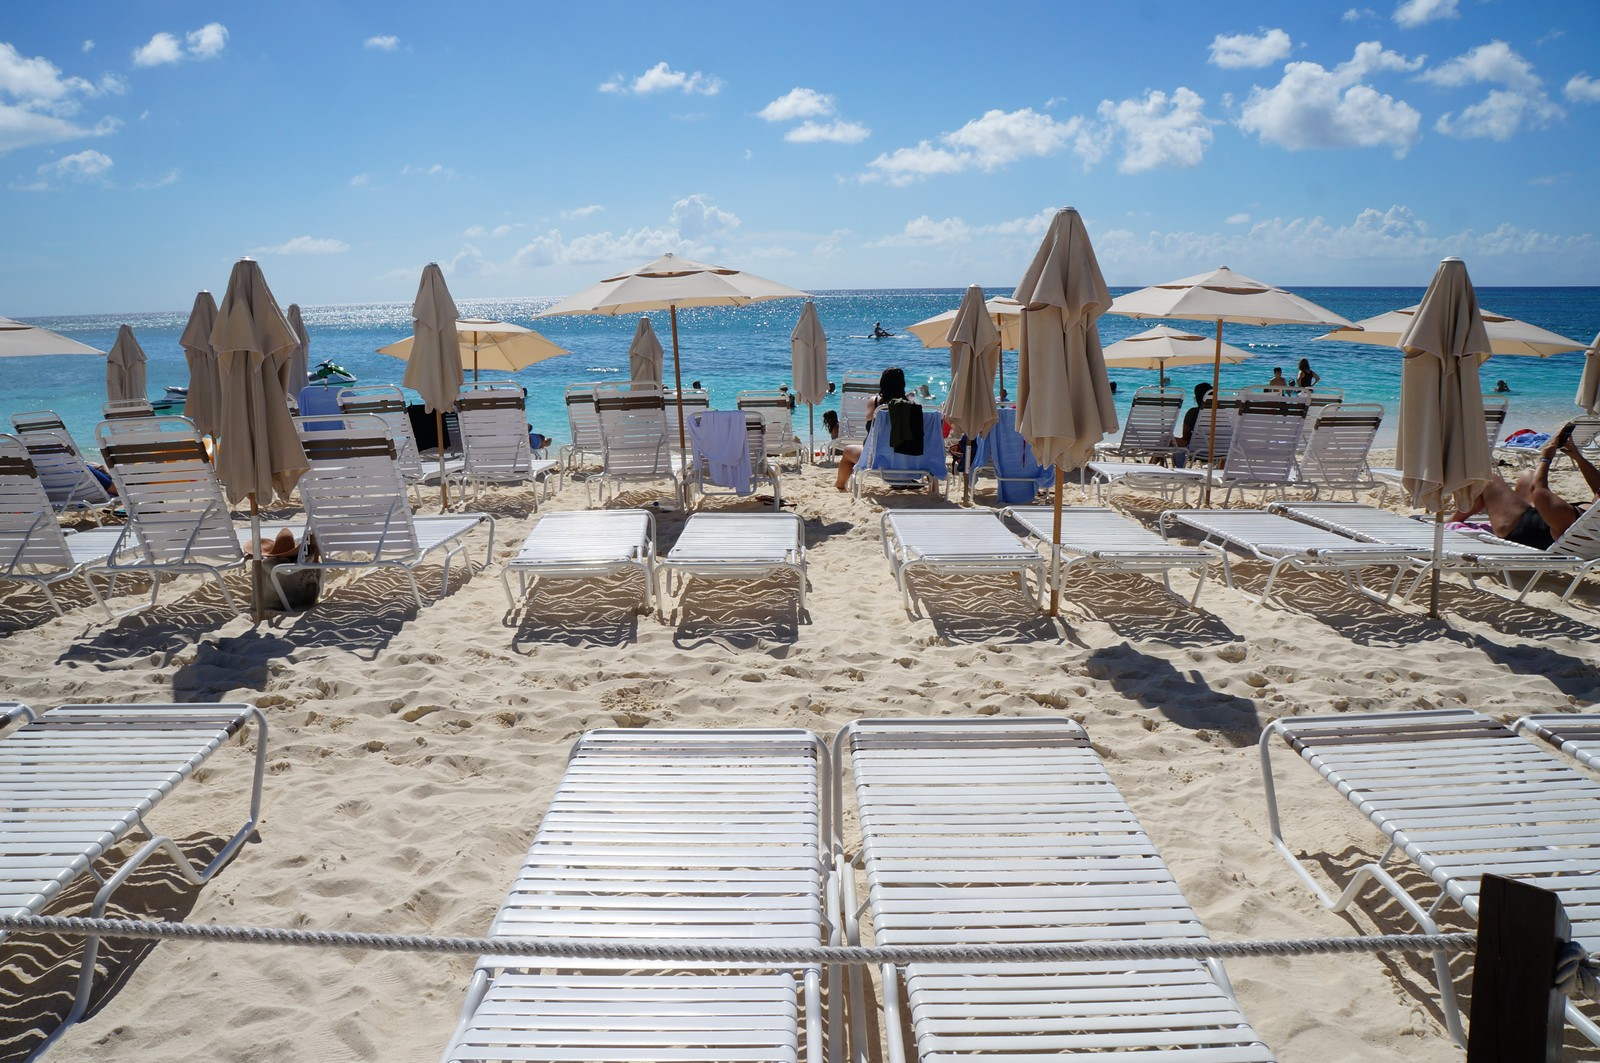 Umbrellas Will Cost You 15 Per Day Beach Chairs 10 And Cabanas Are 100 For The There Also Other Optional Activities That Available To